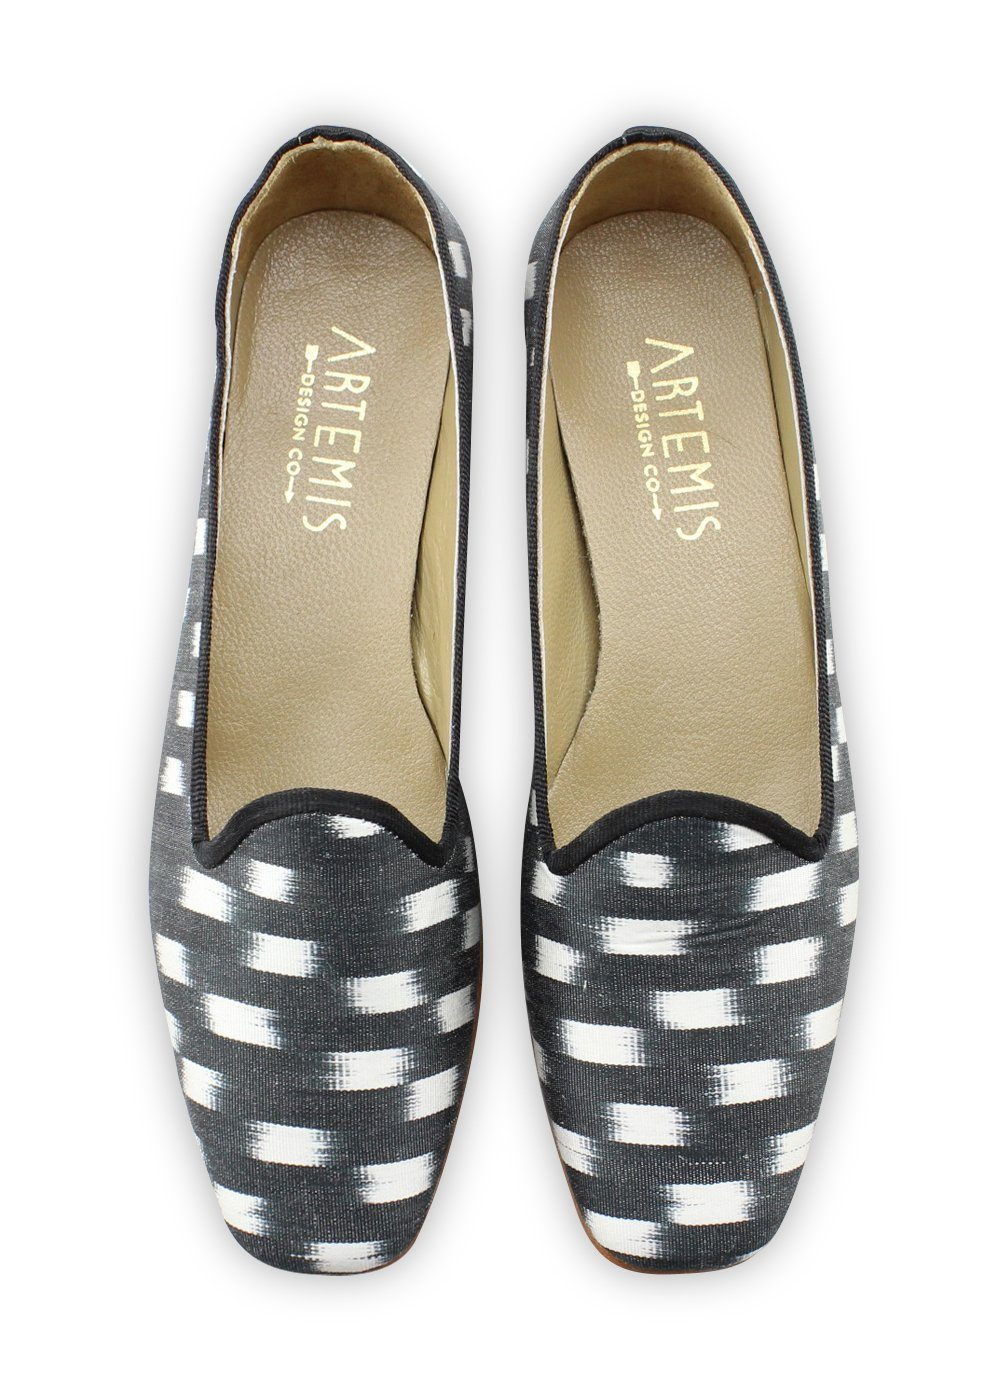 Archived Women's - Sample Women's Silk Loafers, Size 37